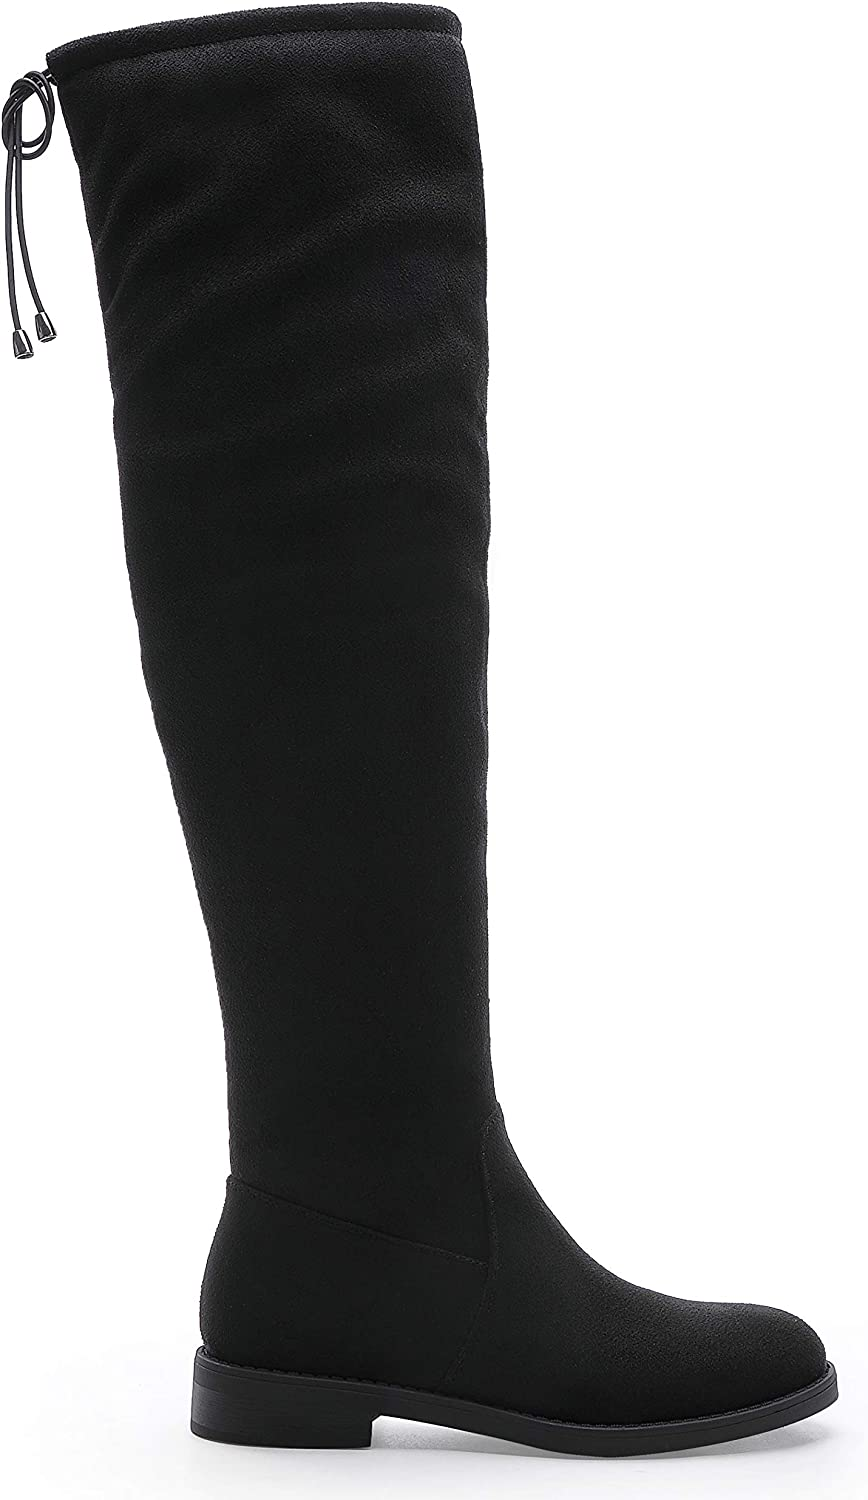 CentroPoint Womens Over The Knee Boot Thigh High Boots Riding Low Heel Strappy Side Zip Stretchy Booties